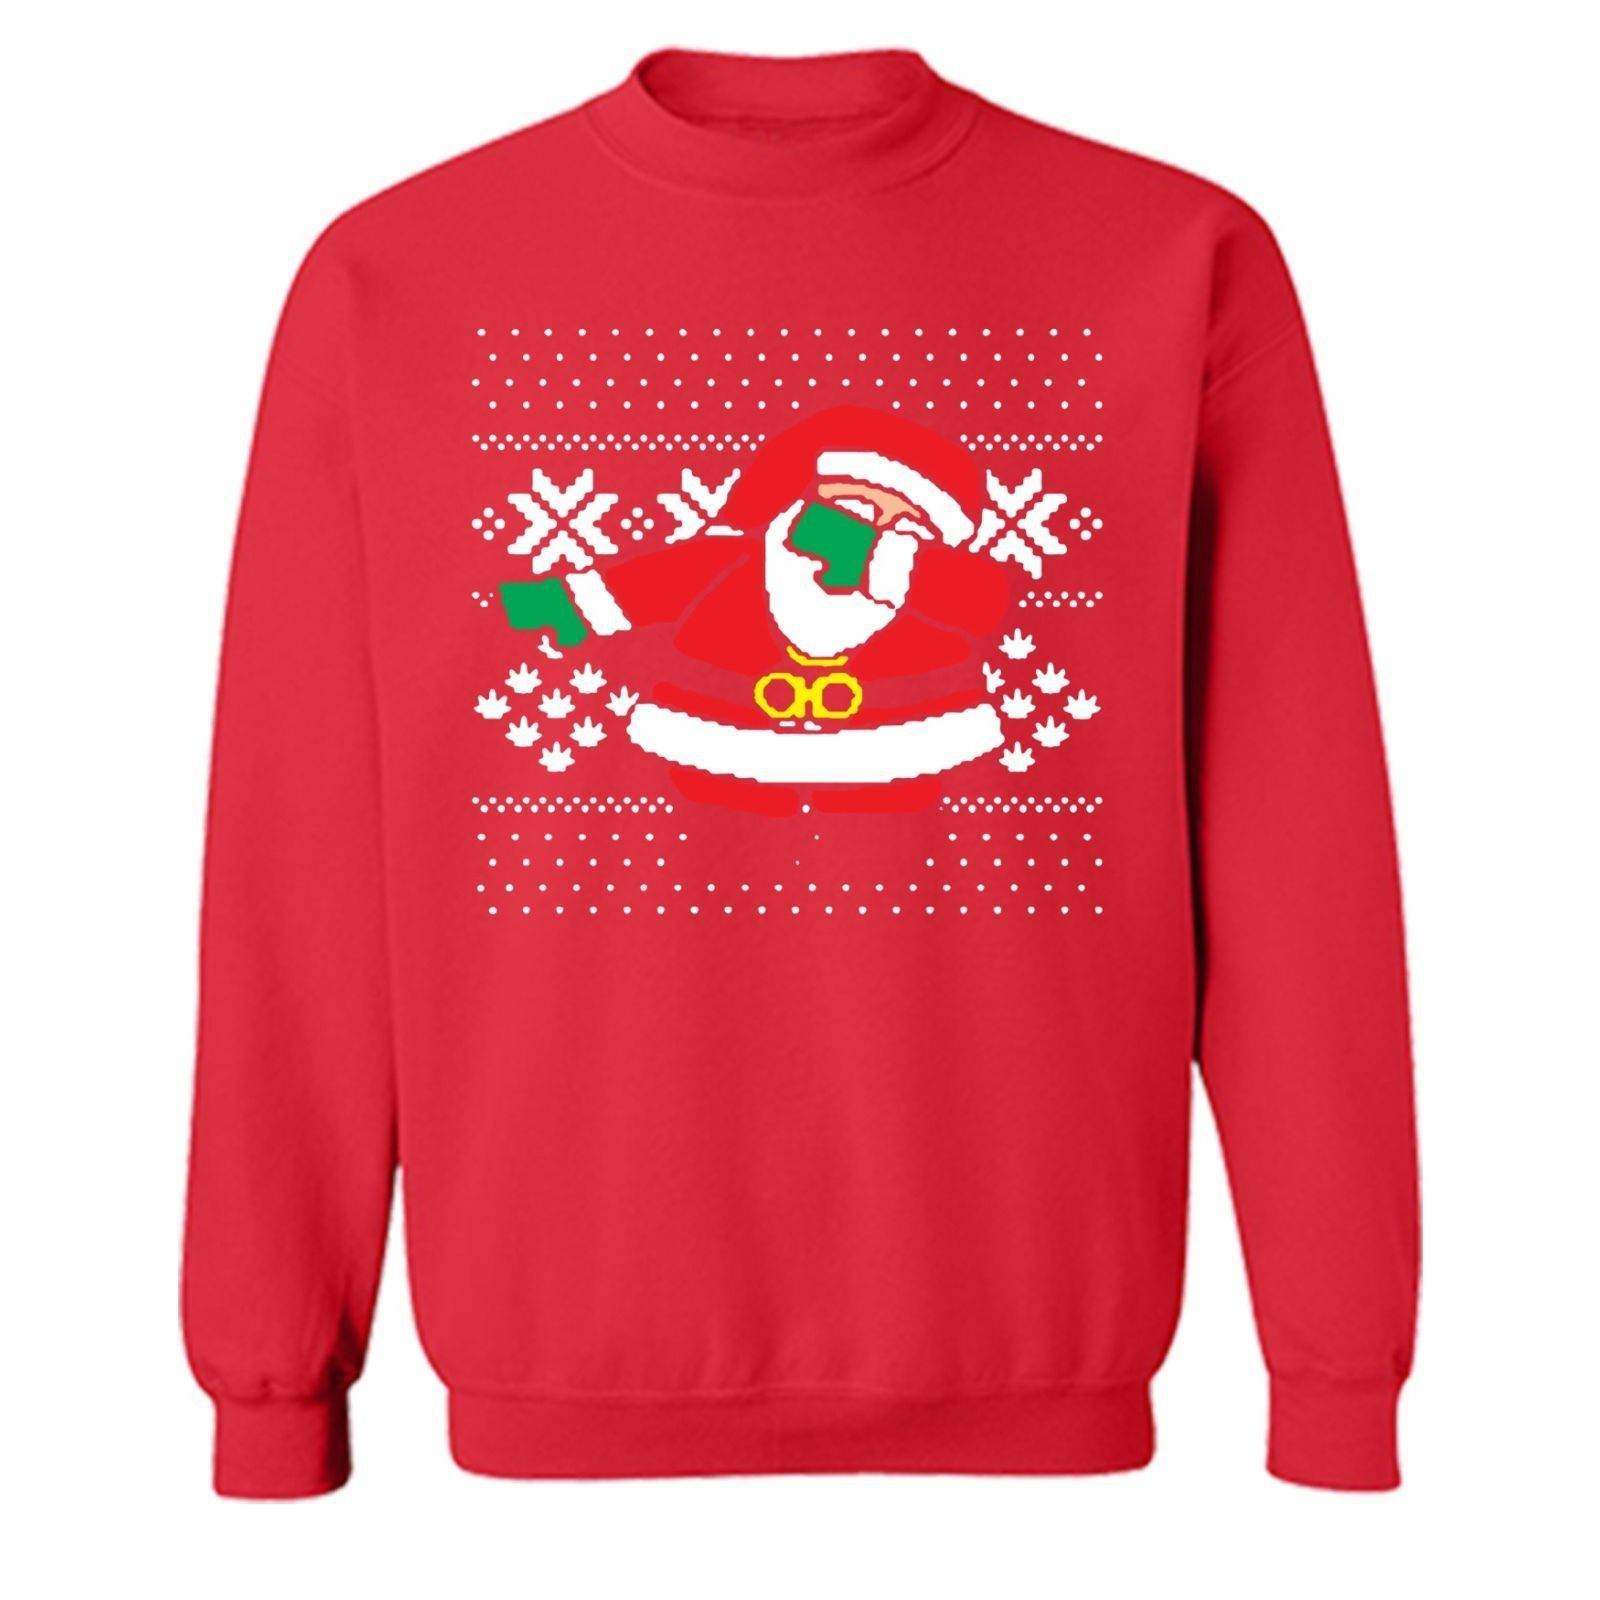 Dabbing Ugly Christmas Sweater 25 Off Cyber Monday Coupon Code